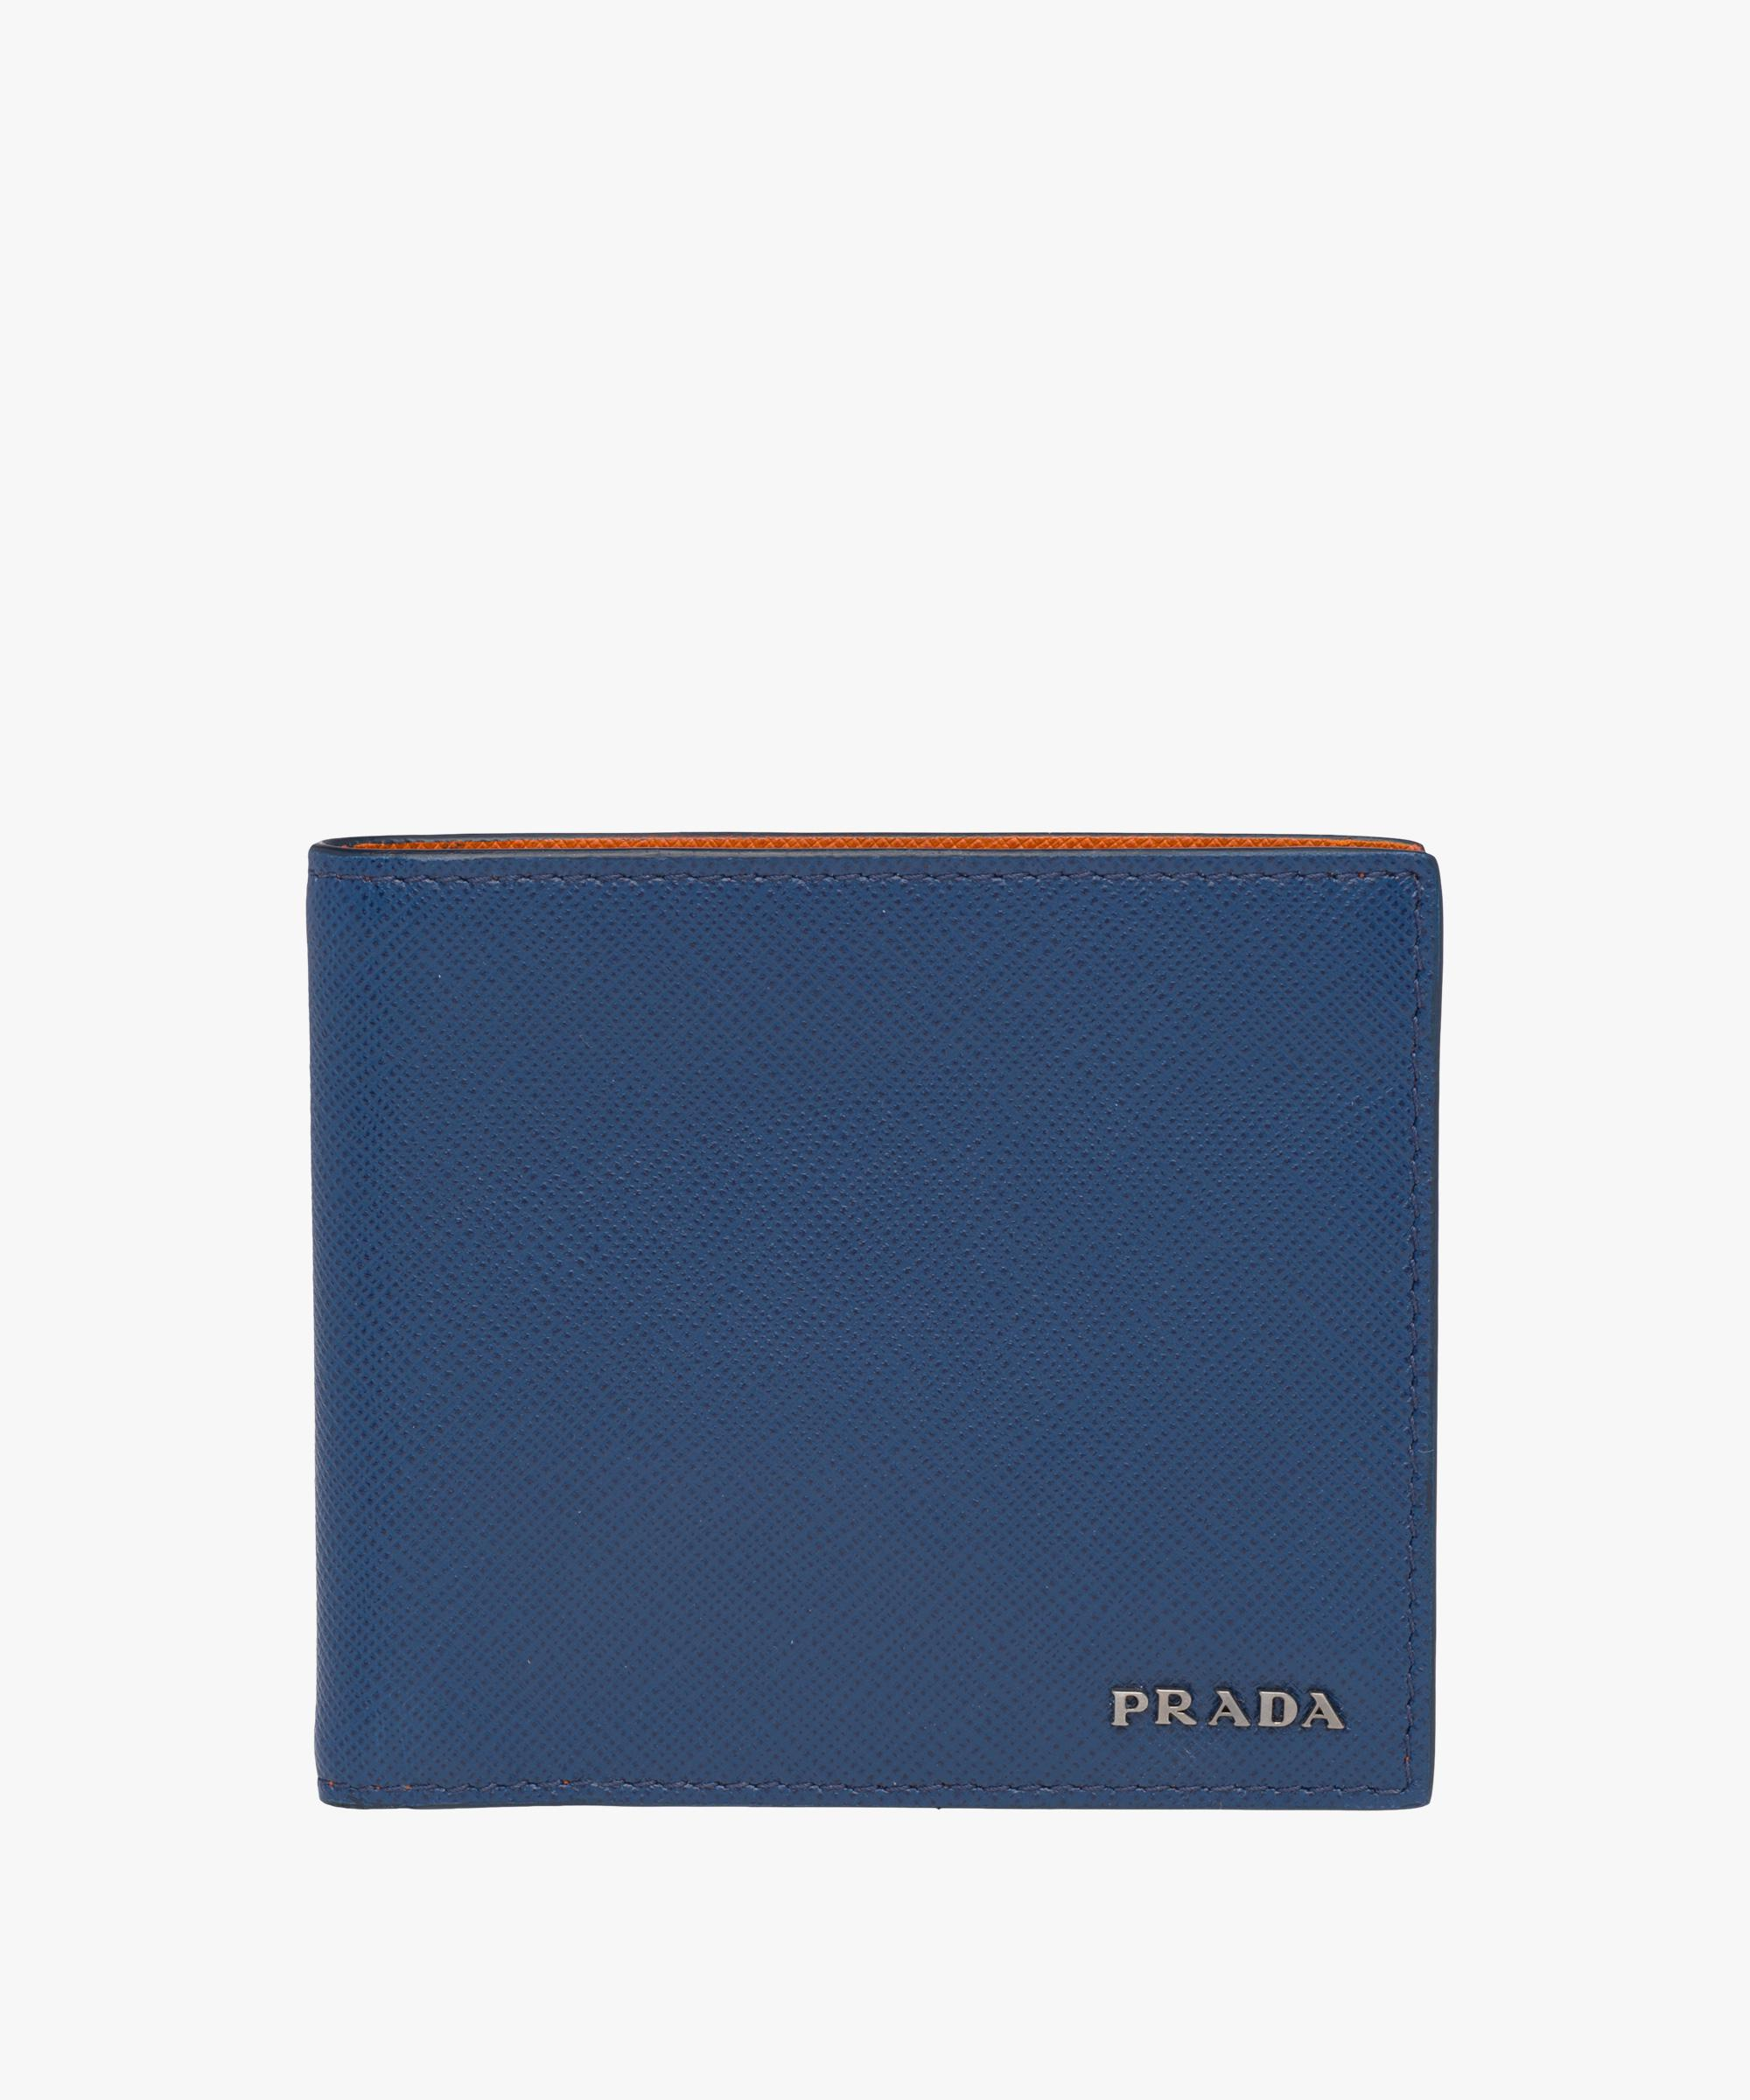 be2cb7e021de sweden prada blue mens wallet bf0a8 e9b09